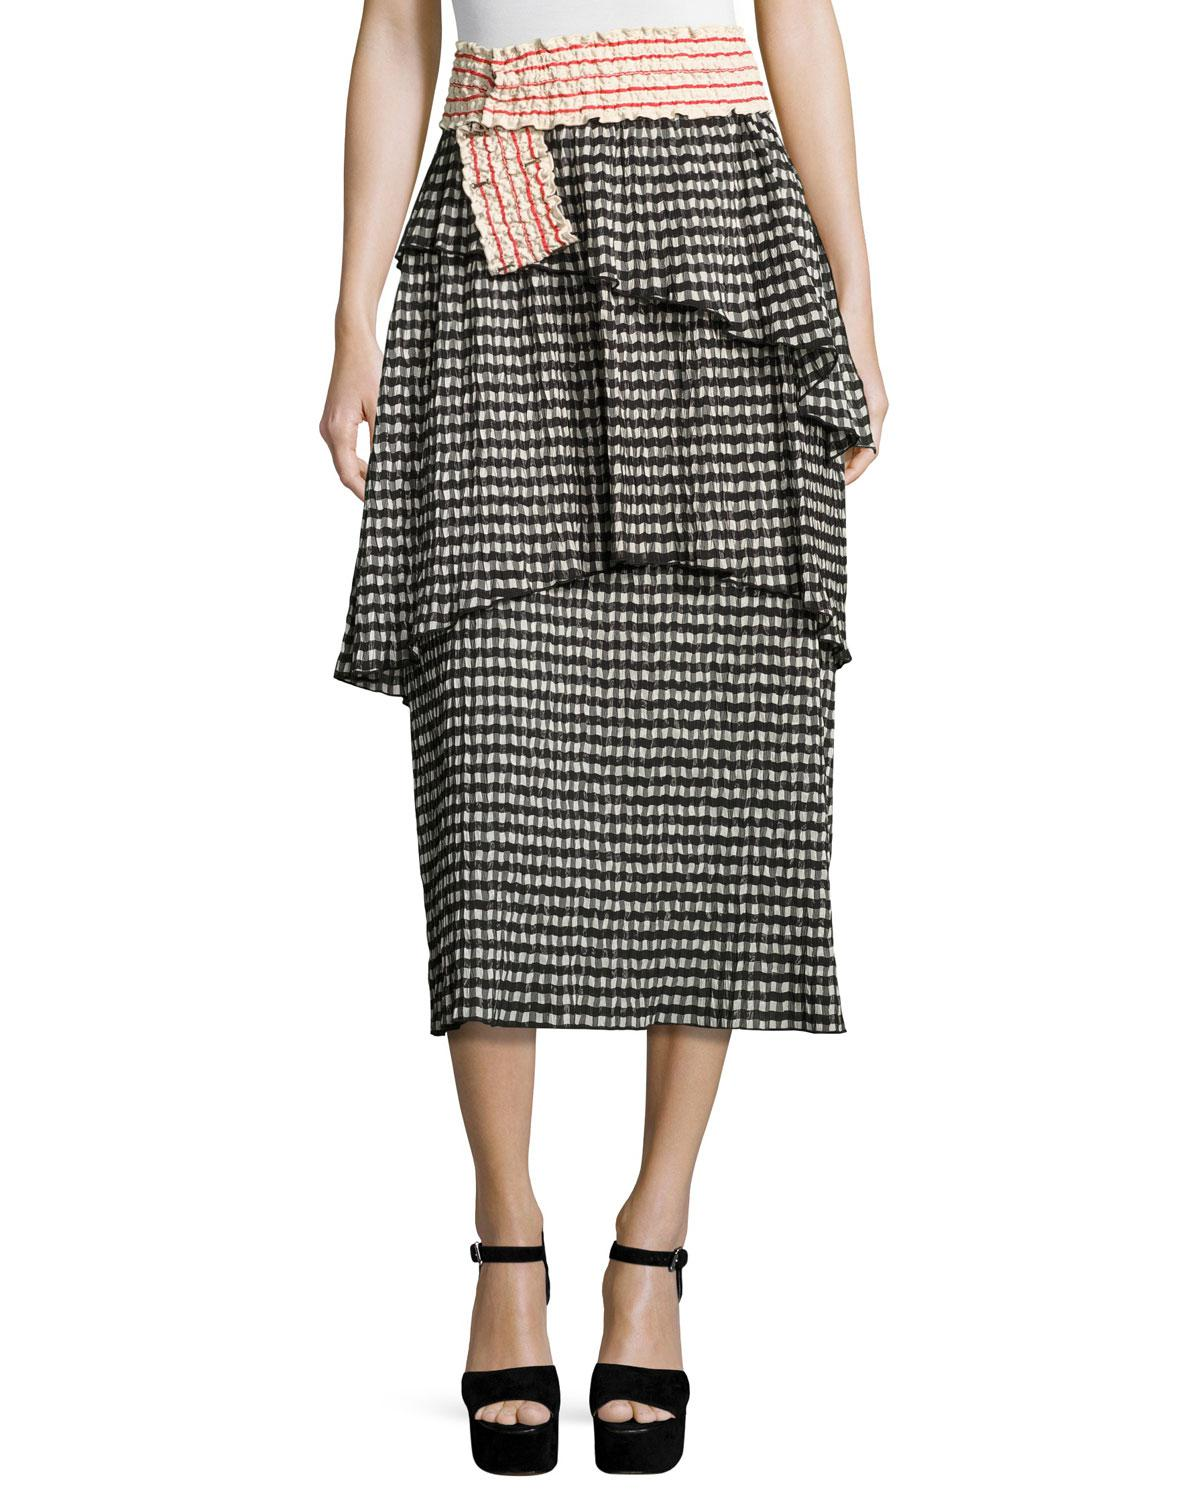 Clearance Clearance Store Rosie Assoulin Woman Mountain Range Gingham Seersucker Midi Skirt Black Size 2 Rosie Assoulin Free Shipping Footlocker Pictures Purchase For Sale PfAfGcCLtO